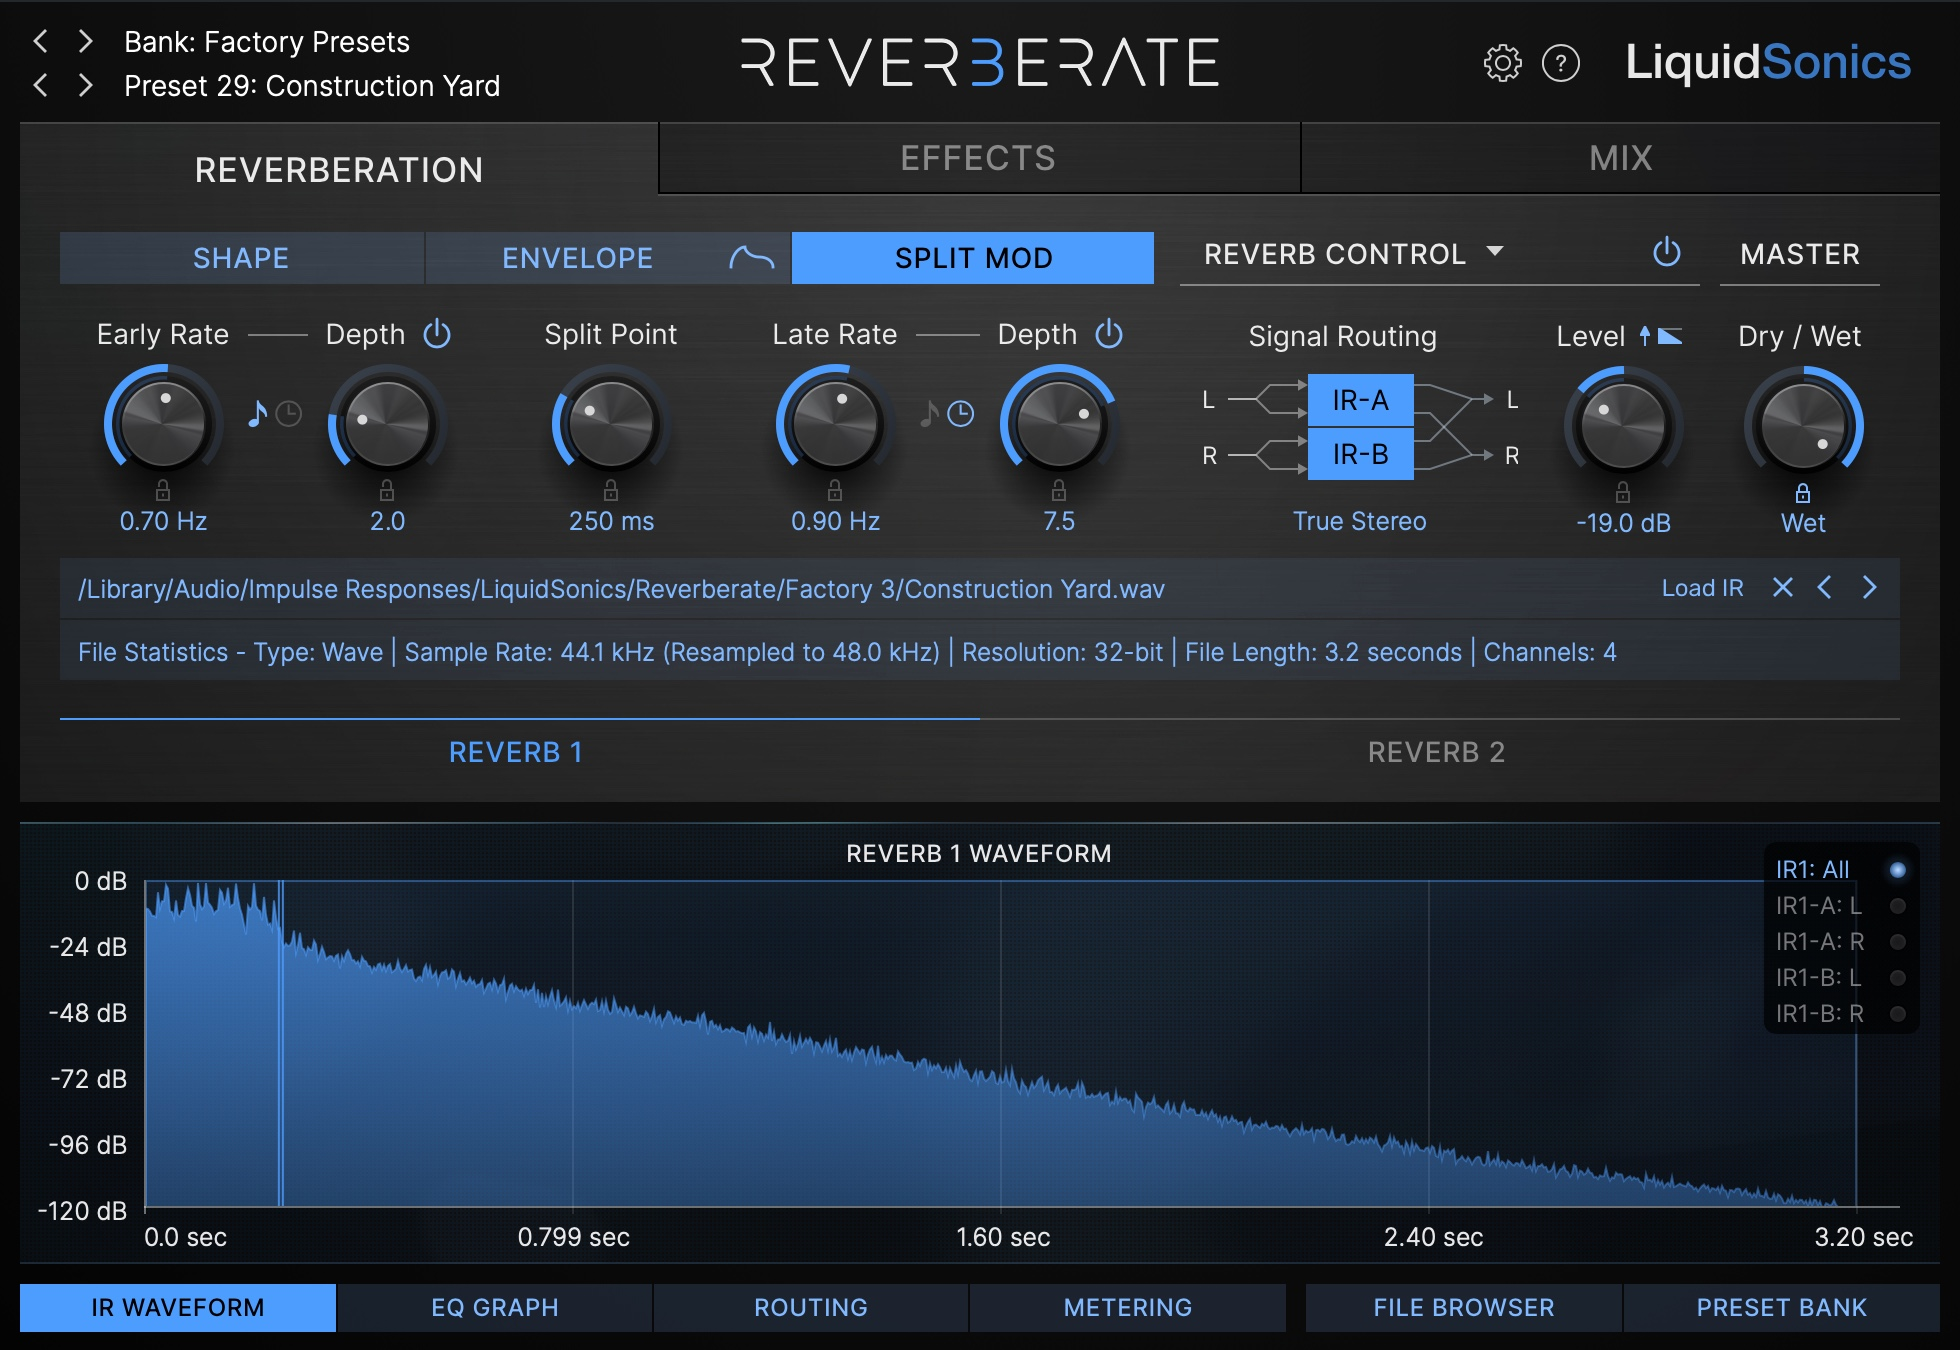 Reverberate 3 Split Mod